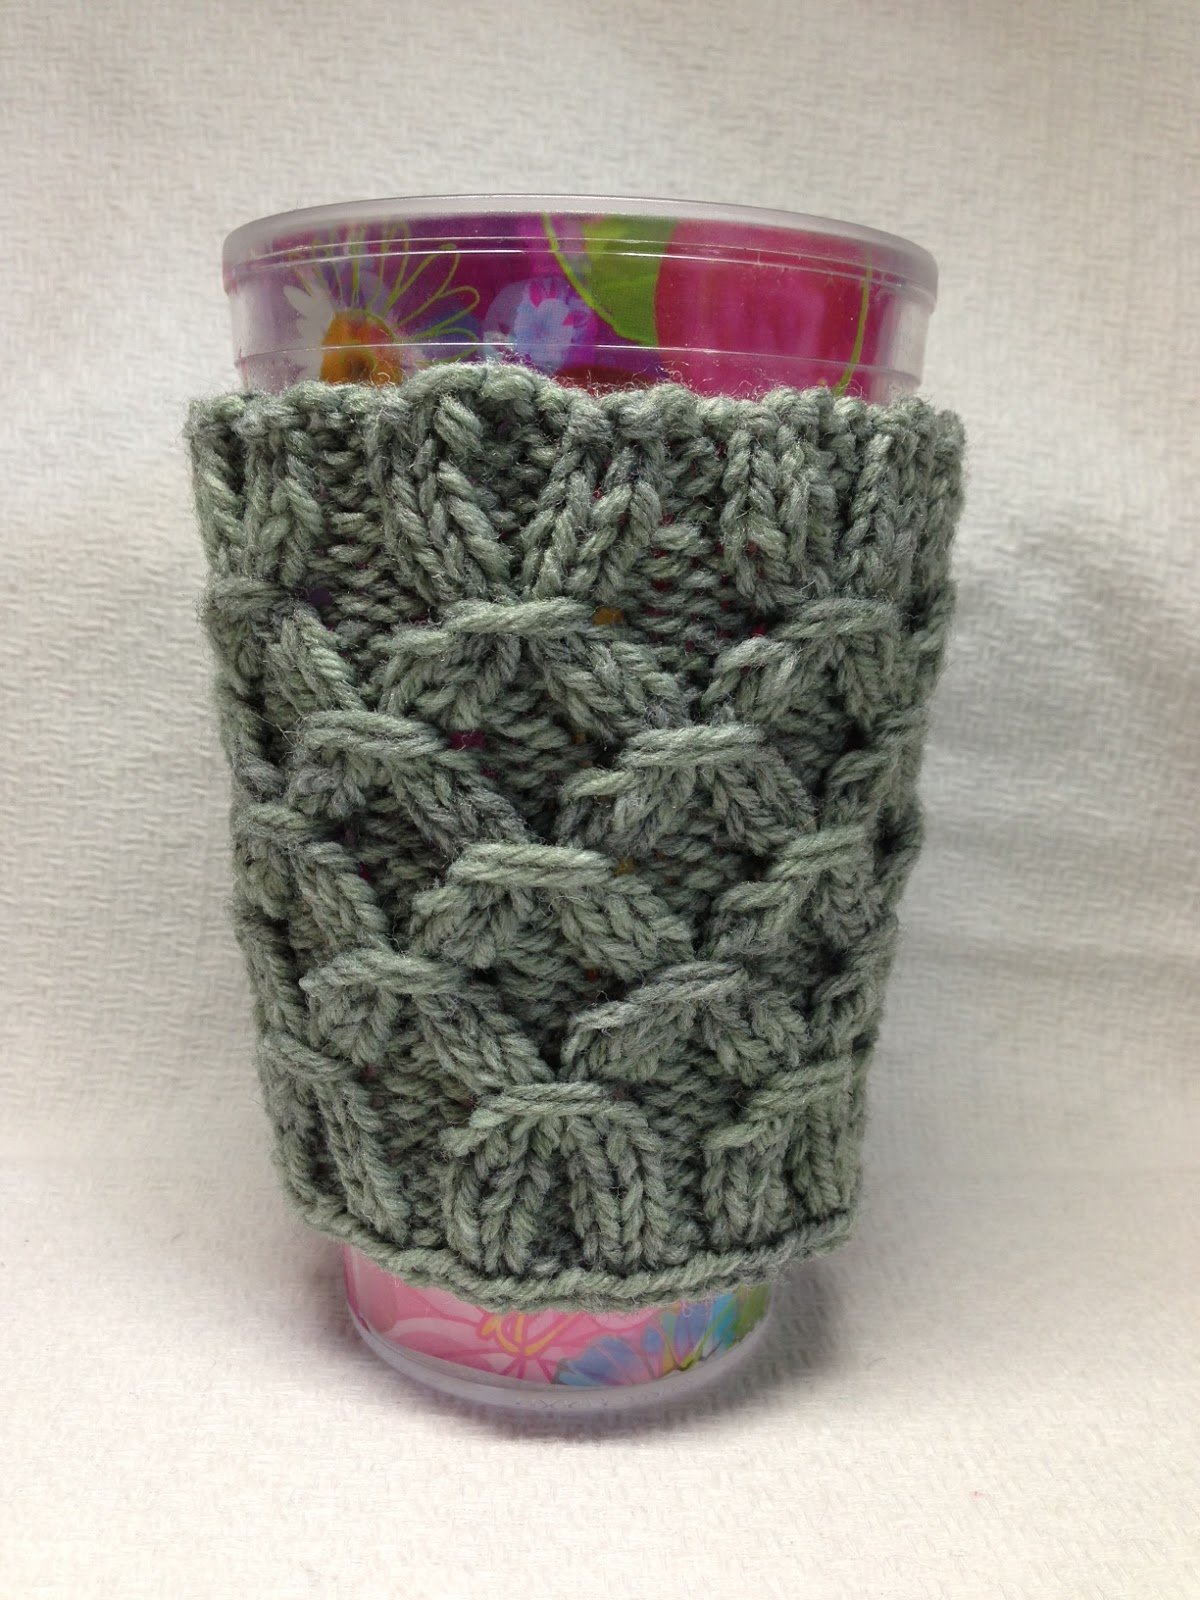 Knitting Pattern For Mug Holder : iKNITS: How to knit a Smocked Mug